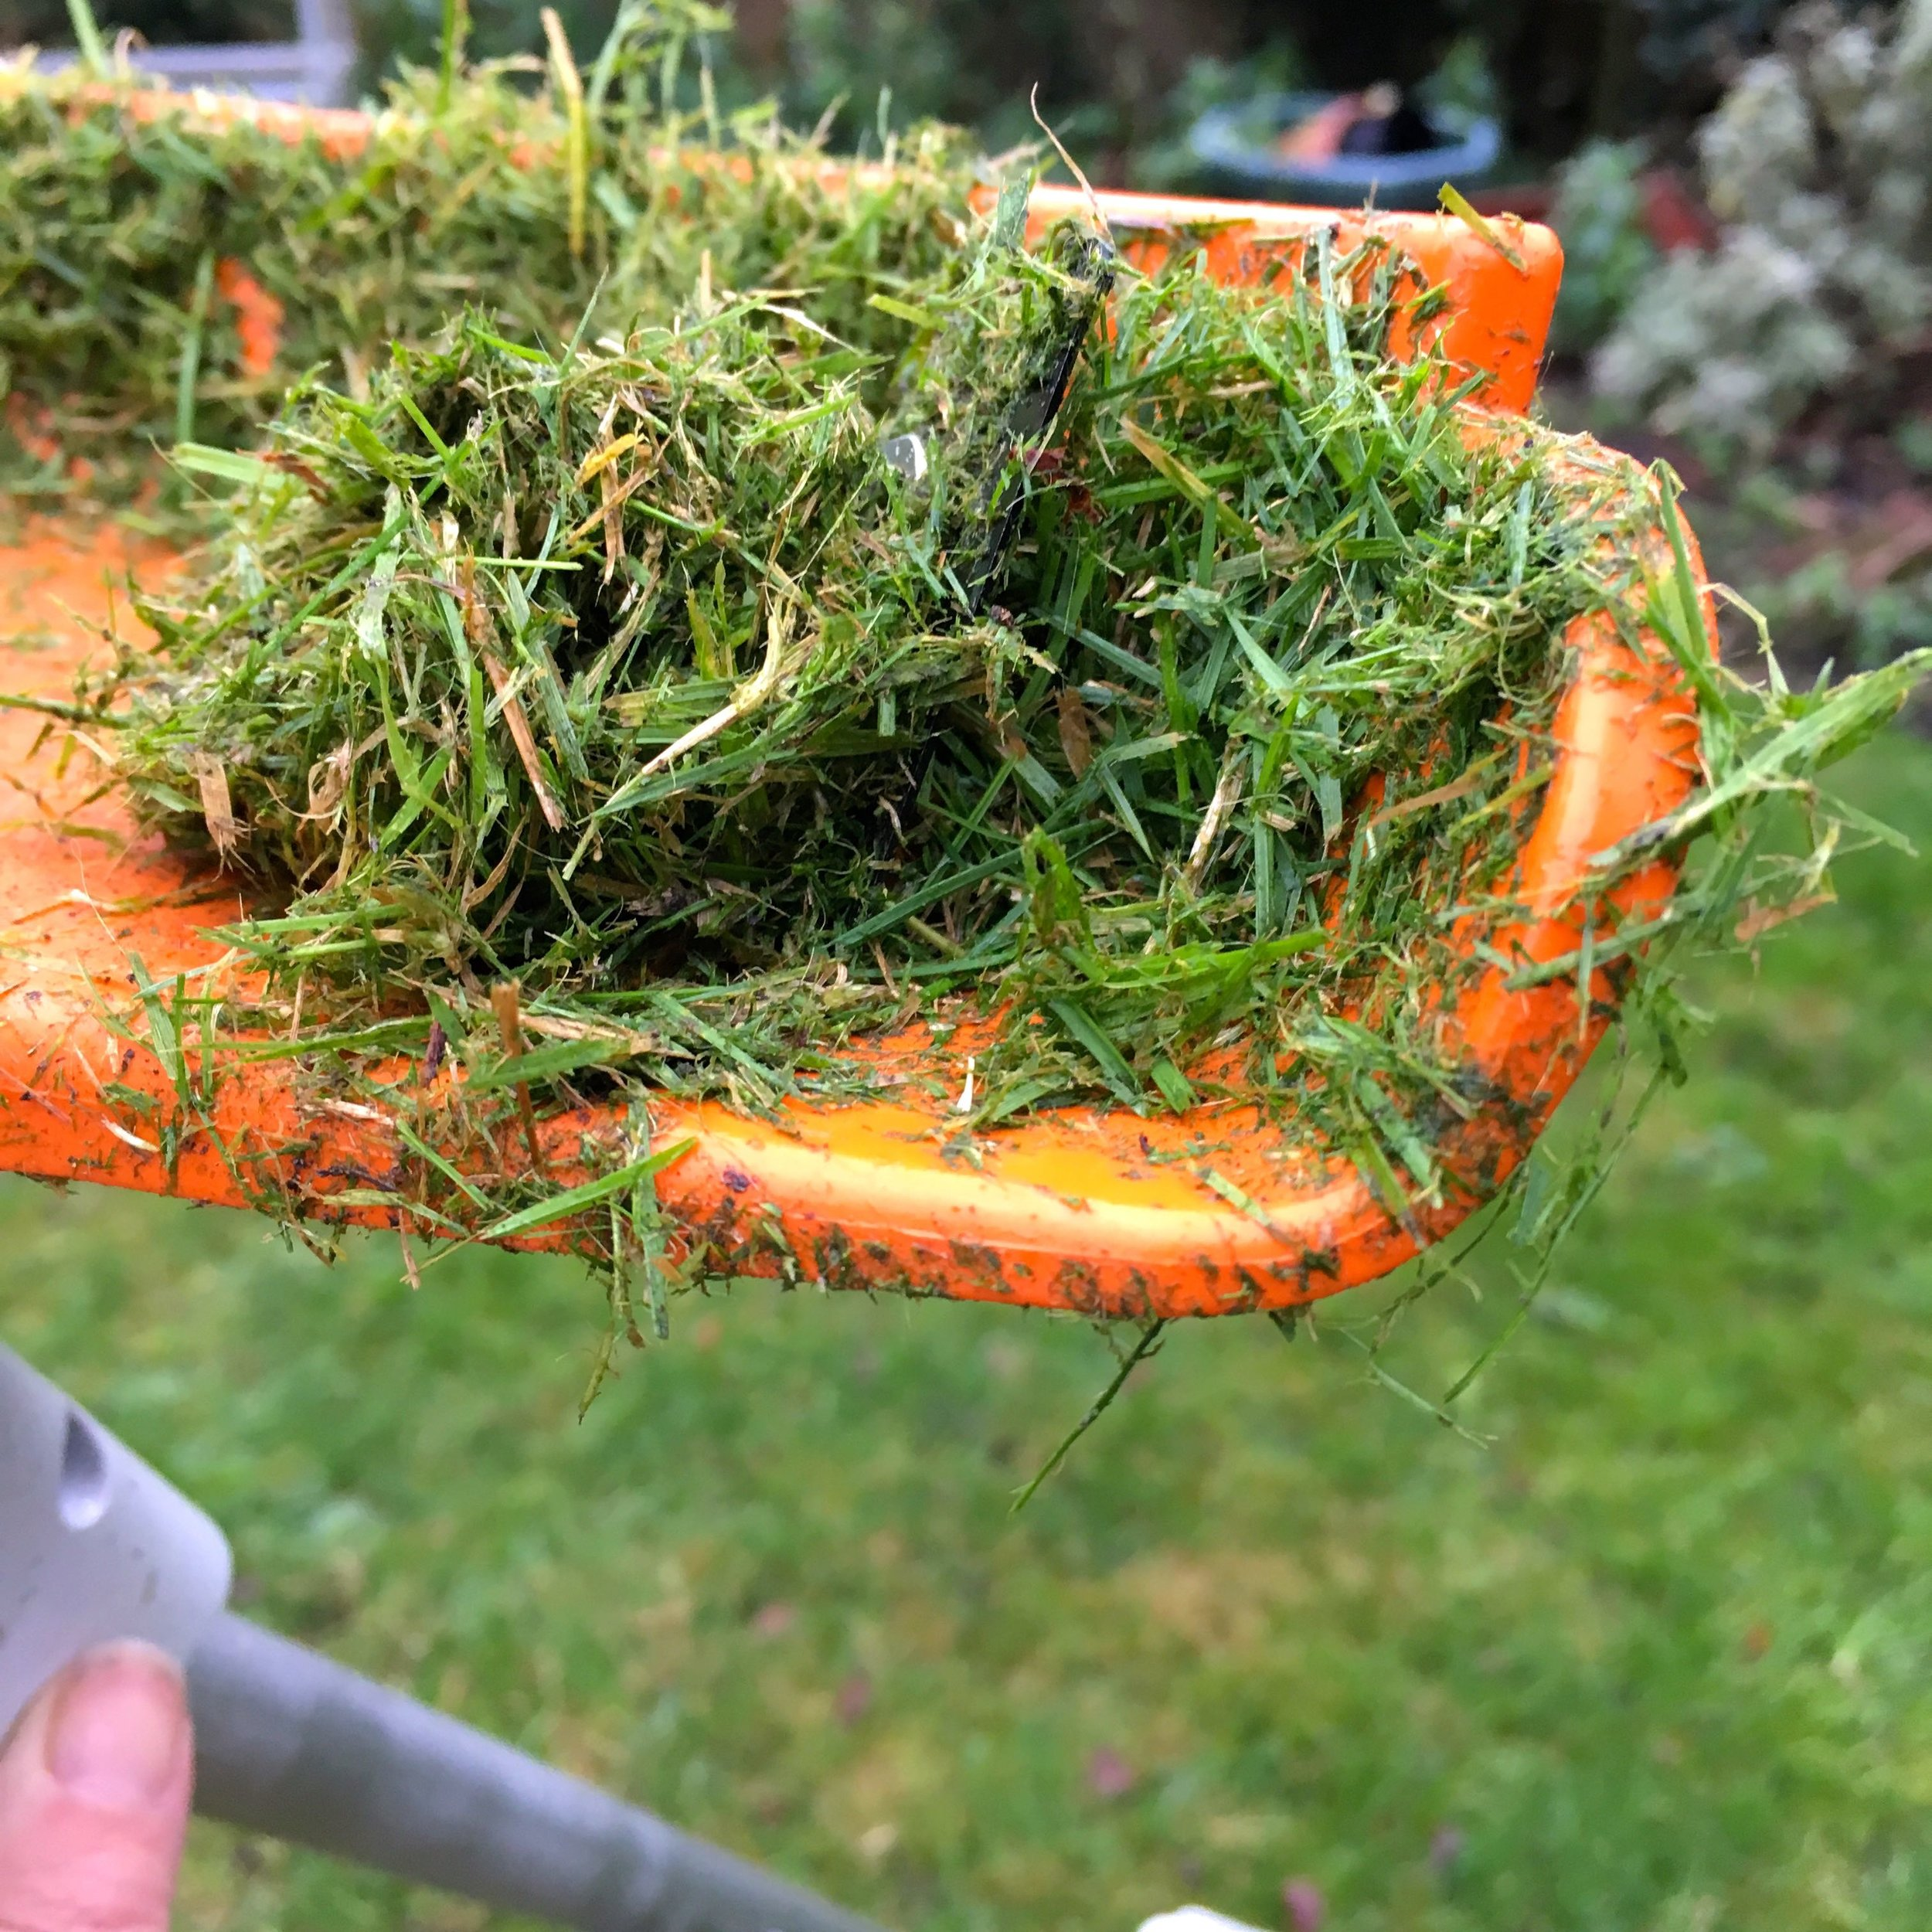 A close up of the grass in the compact stihl trimmer because I couldn't resist an arty shot